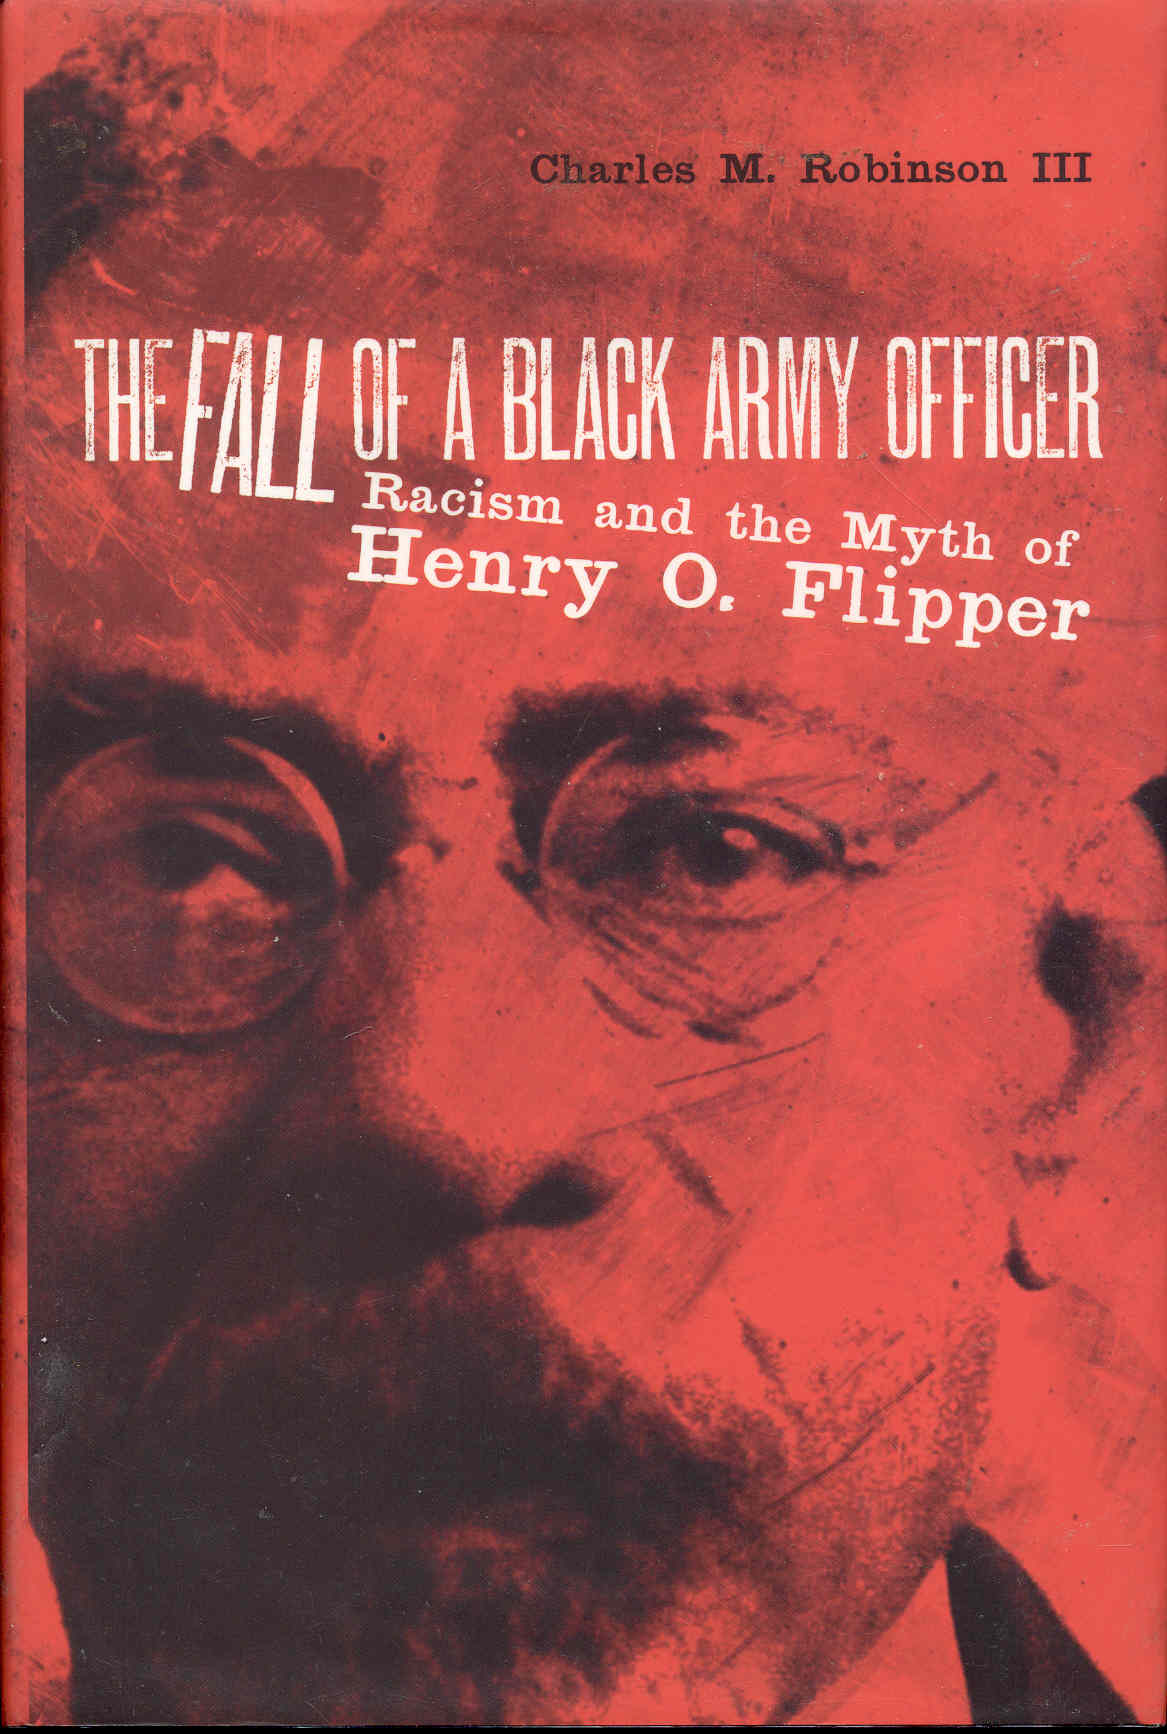 Image for The Fall of a Black Army Officer: Racism and the Myth of Henry O. Flipper